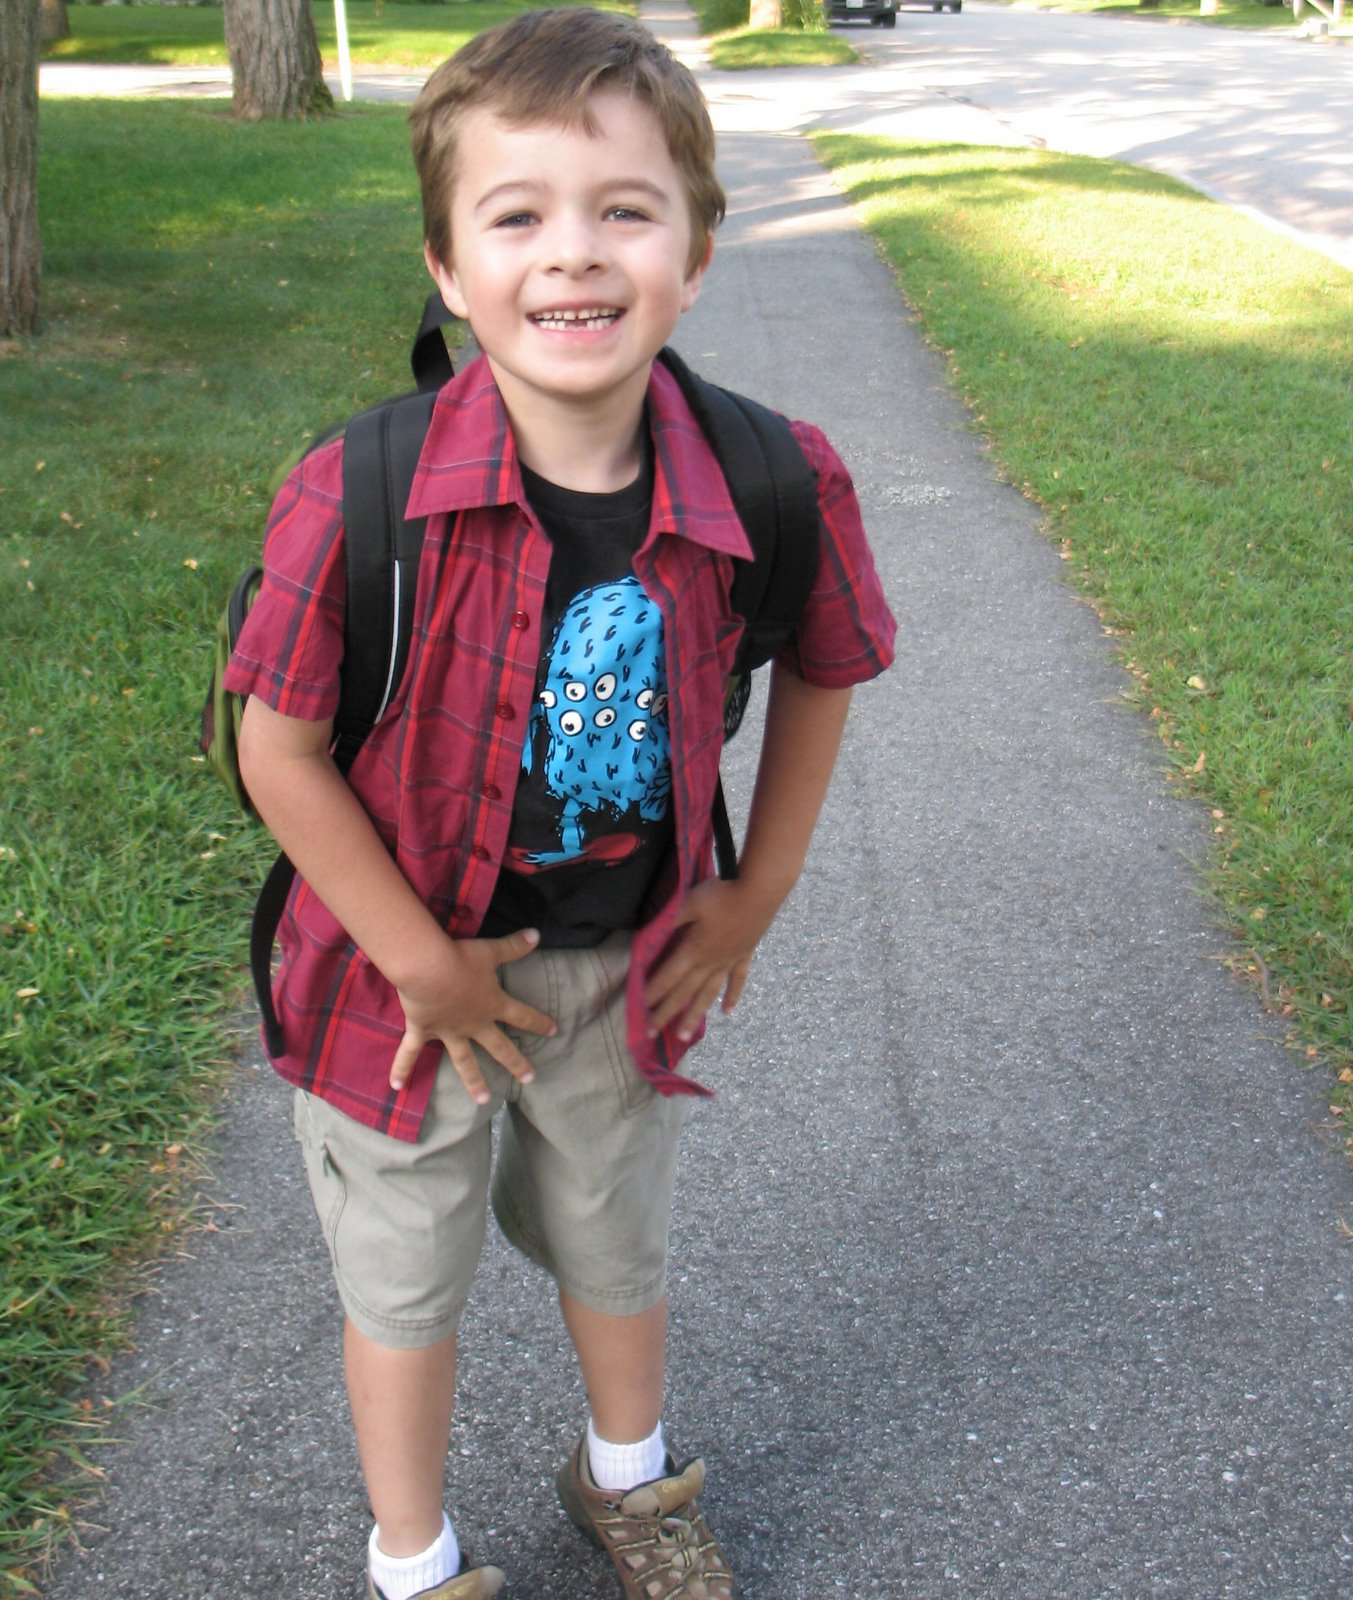 Boy with backpack on, plaid shirt, monster tshirt and shorts. He has a big smile.